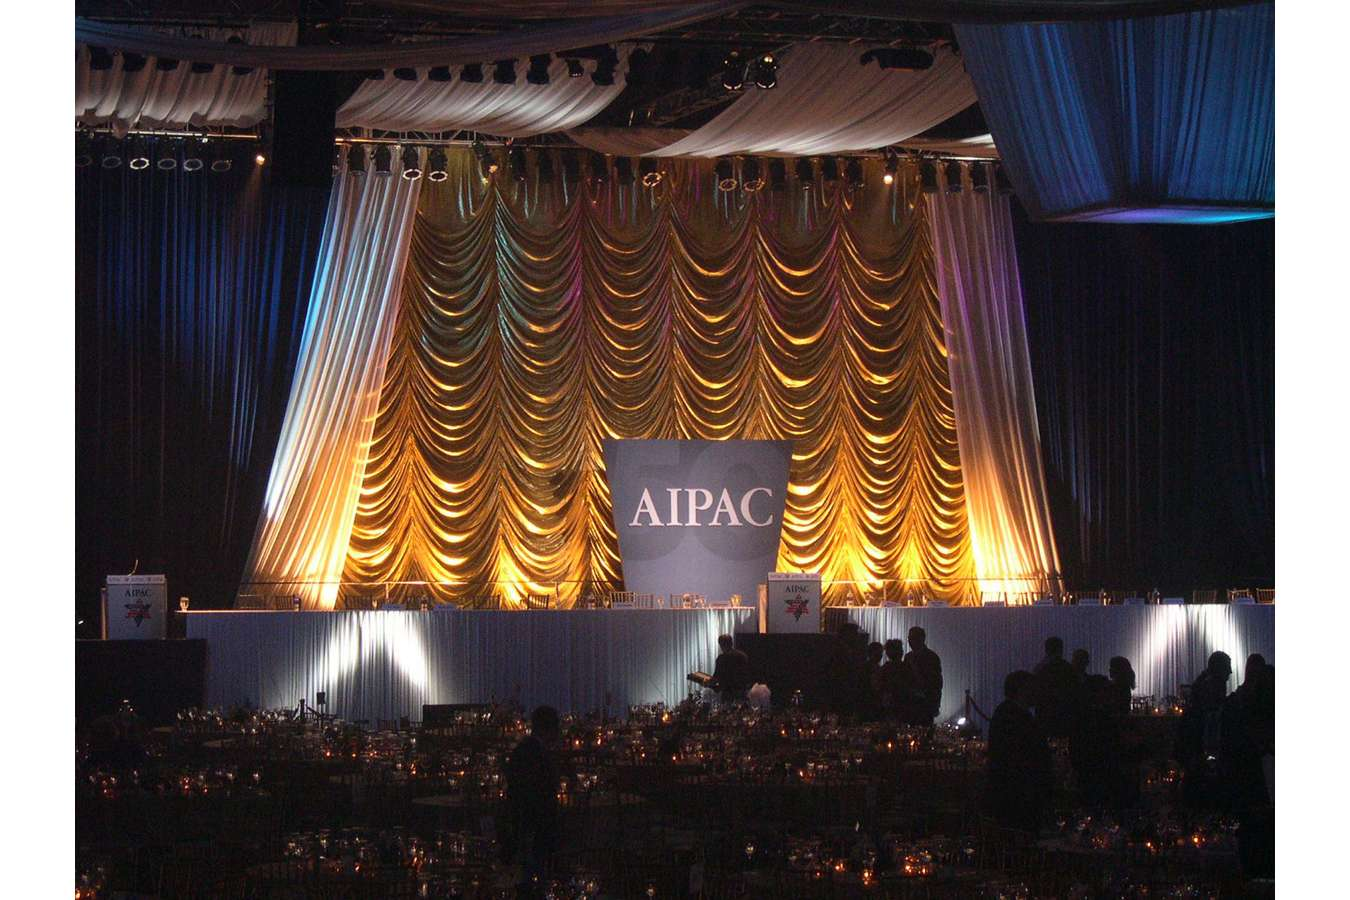 AIP 01Prev : AIPAC at 50: Center Stage for Golden Anniversary